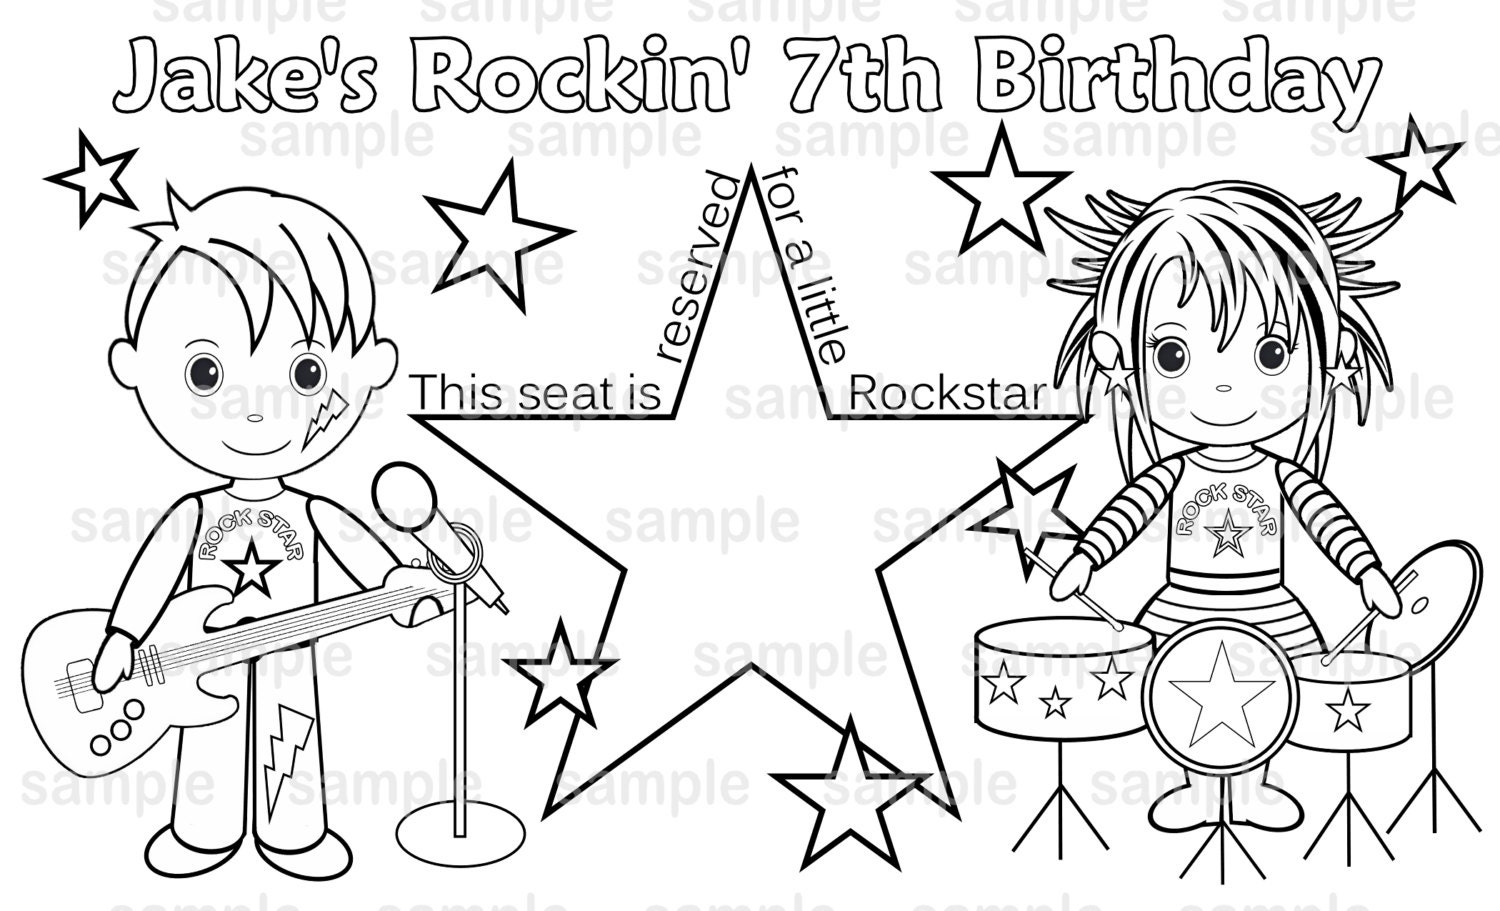 coloring pages rockstar - printable personalized rockstar diva placemat childrens